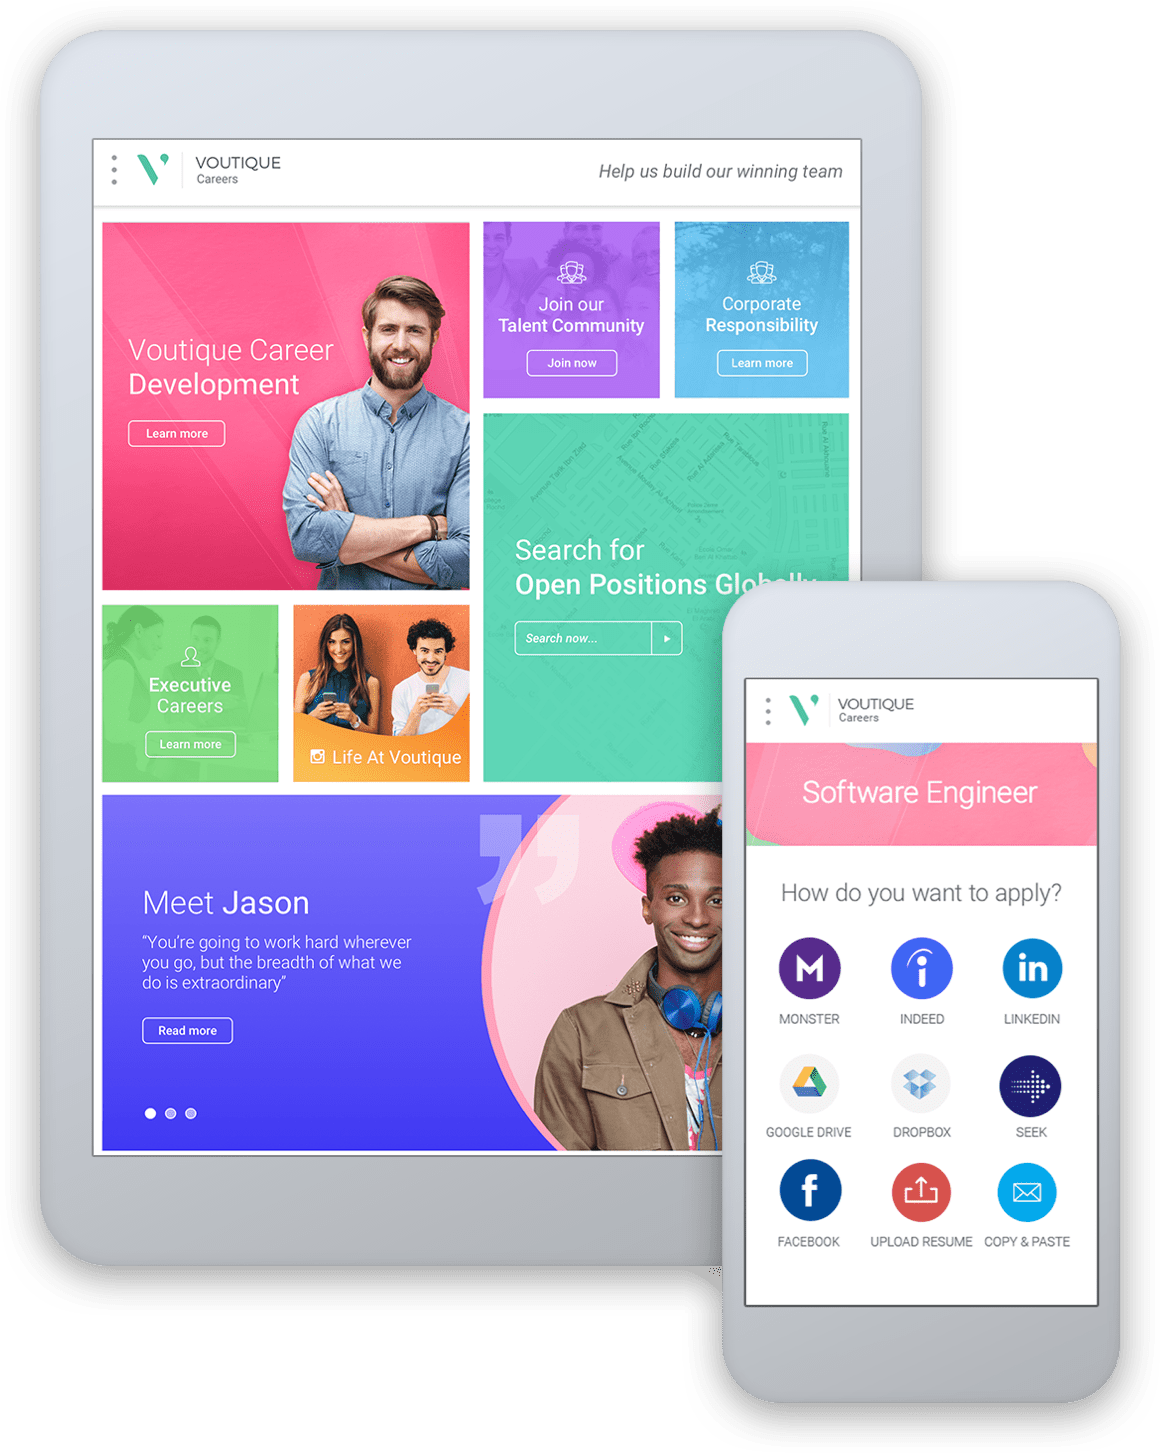 Avature Demo - Applicant-tracking-system-Career-Sites-and-Candidate-Experience